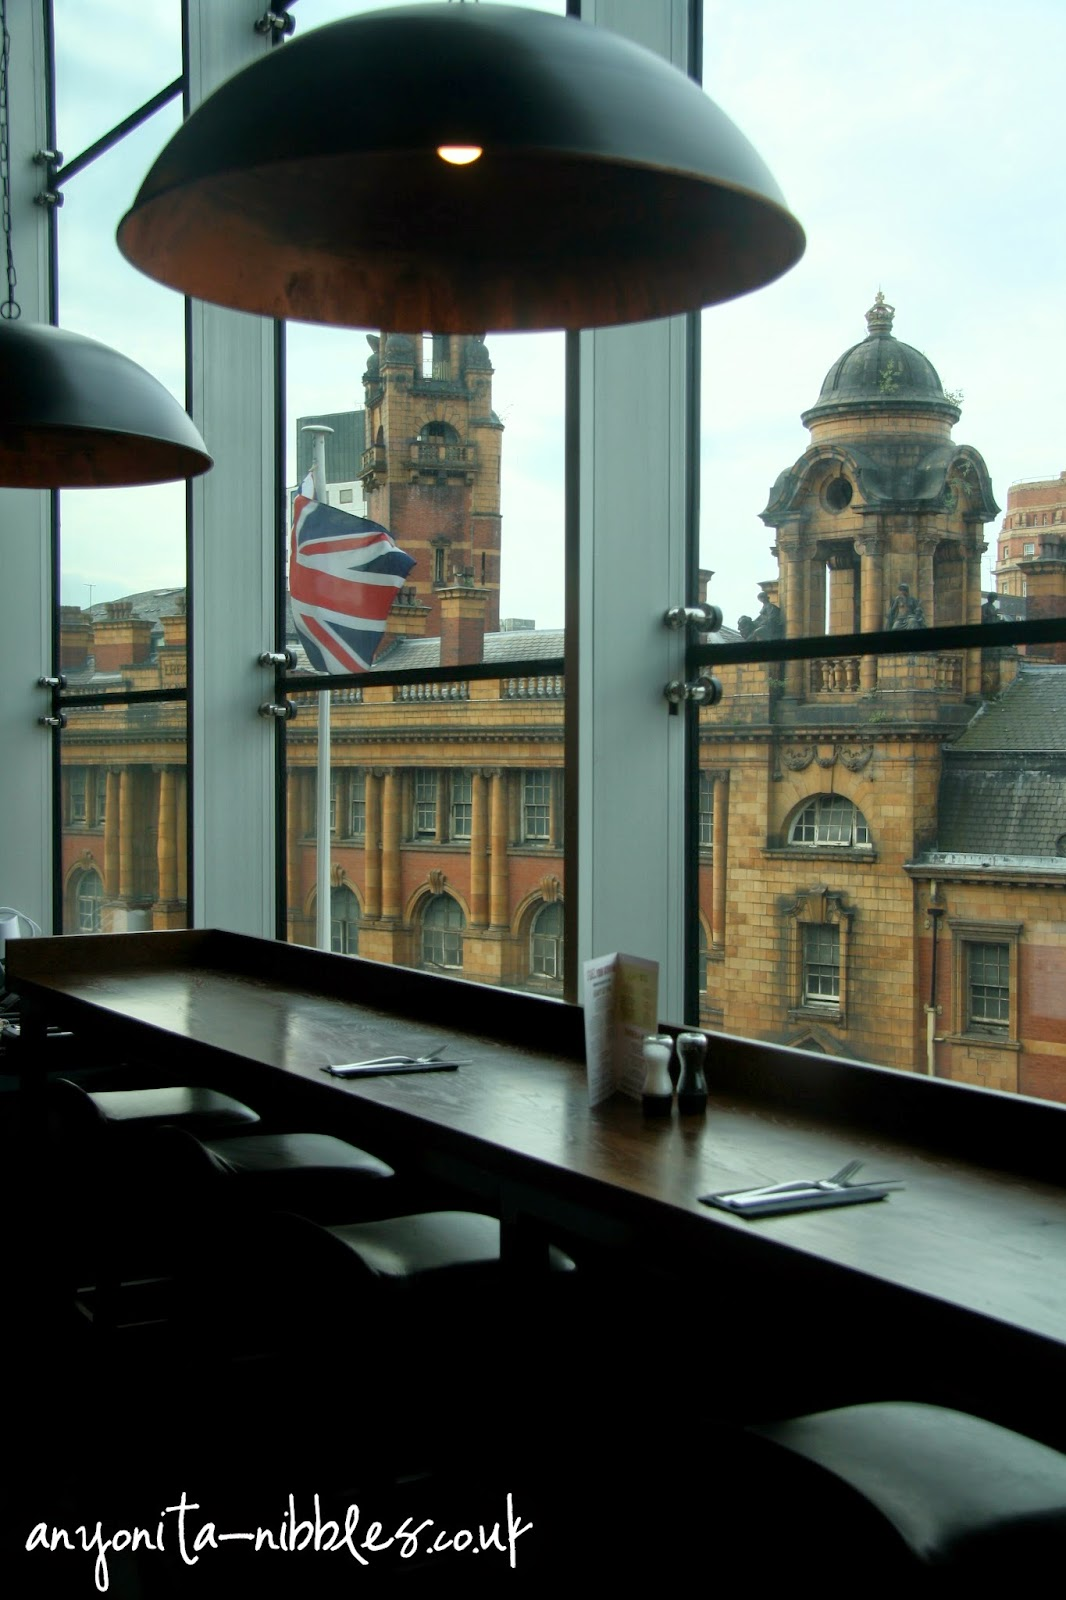 Tables overlooking London street and the abandoned fire station at Manchester Piccadilly | Anyonita-nibbles.co.uk